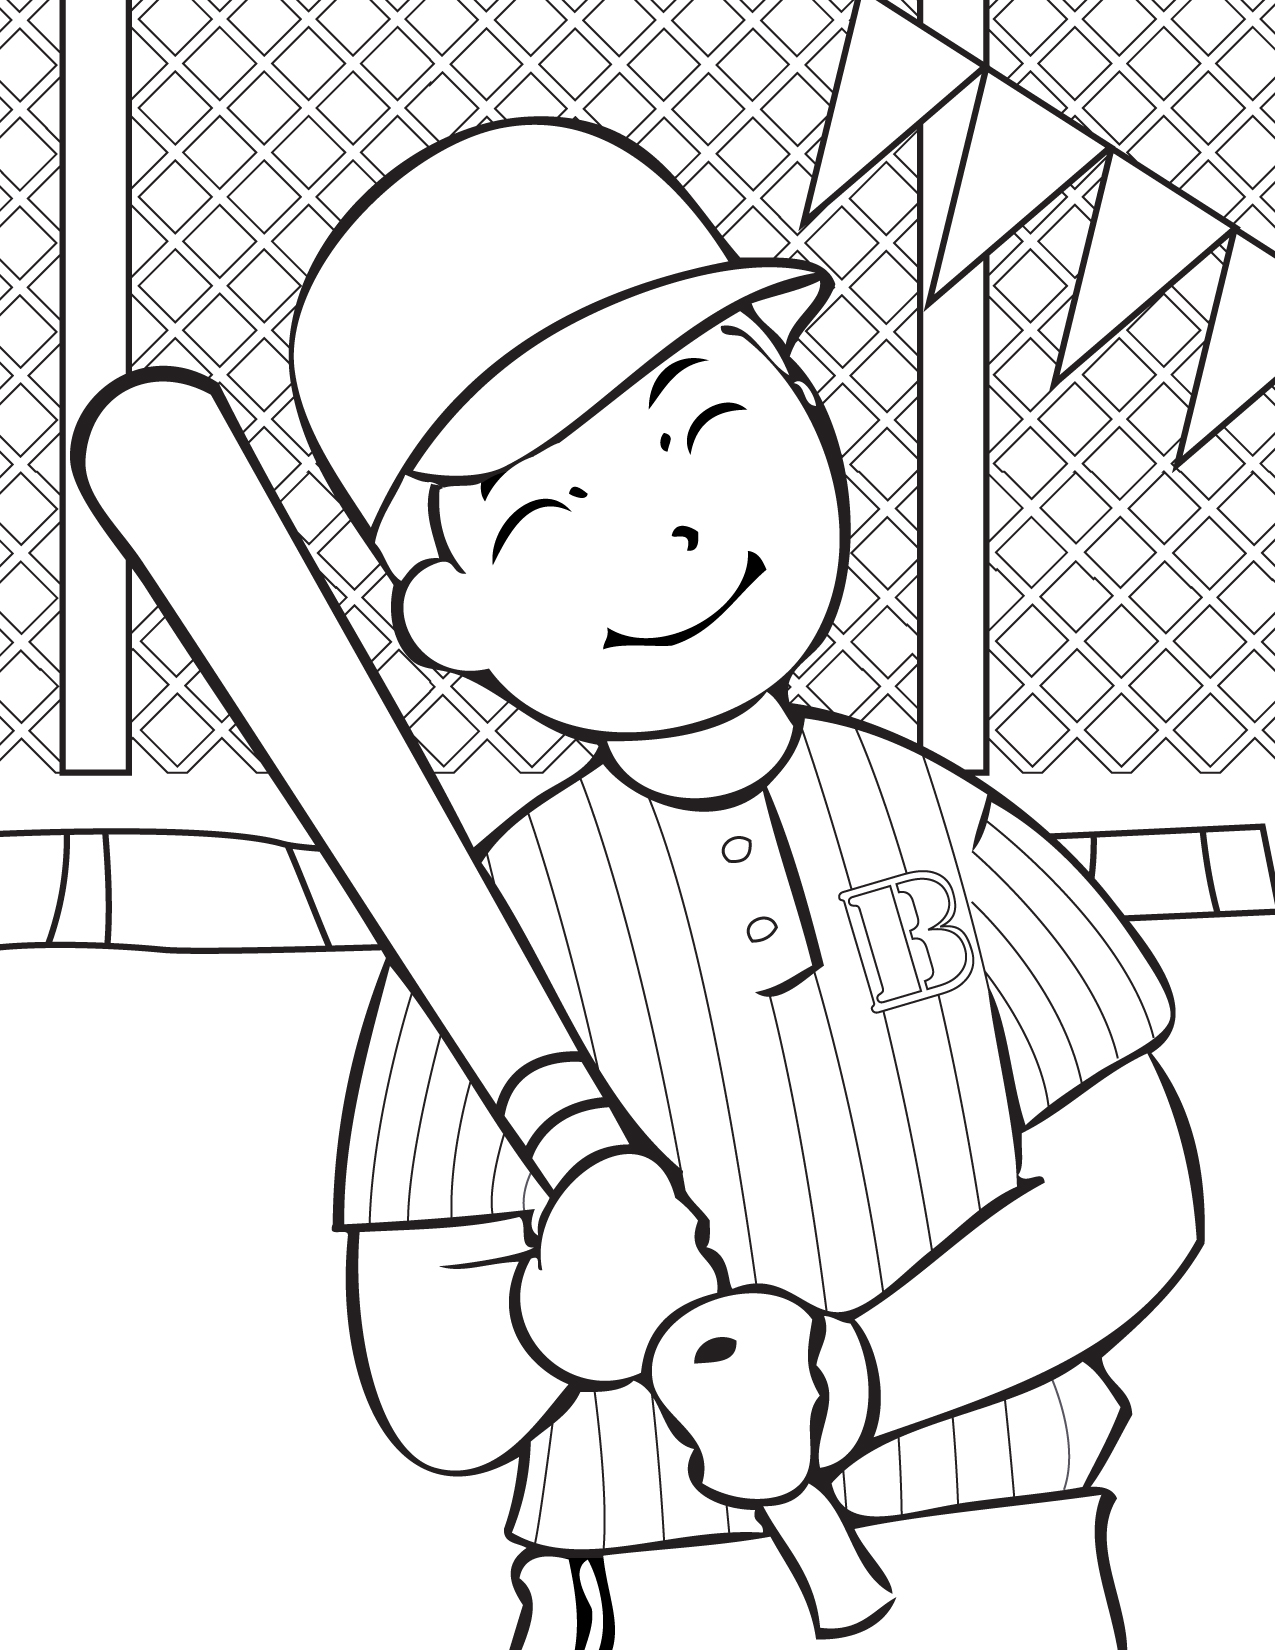 image regarding Free Printable Sports Coloring Pages identified as Absolutely free Printable Baseball Coloring Webpages for Children - Perfect